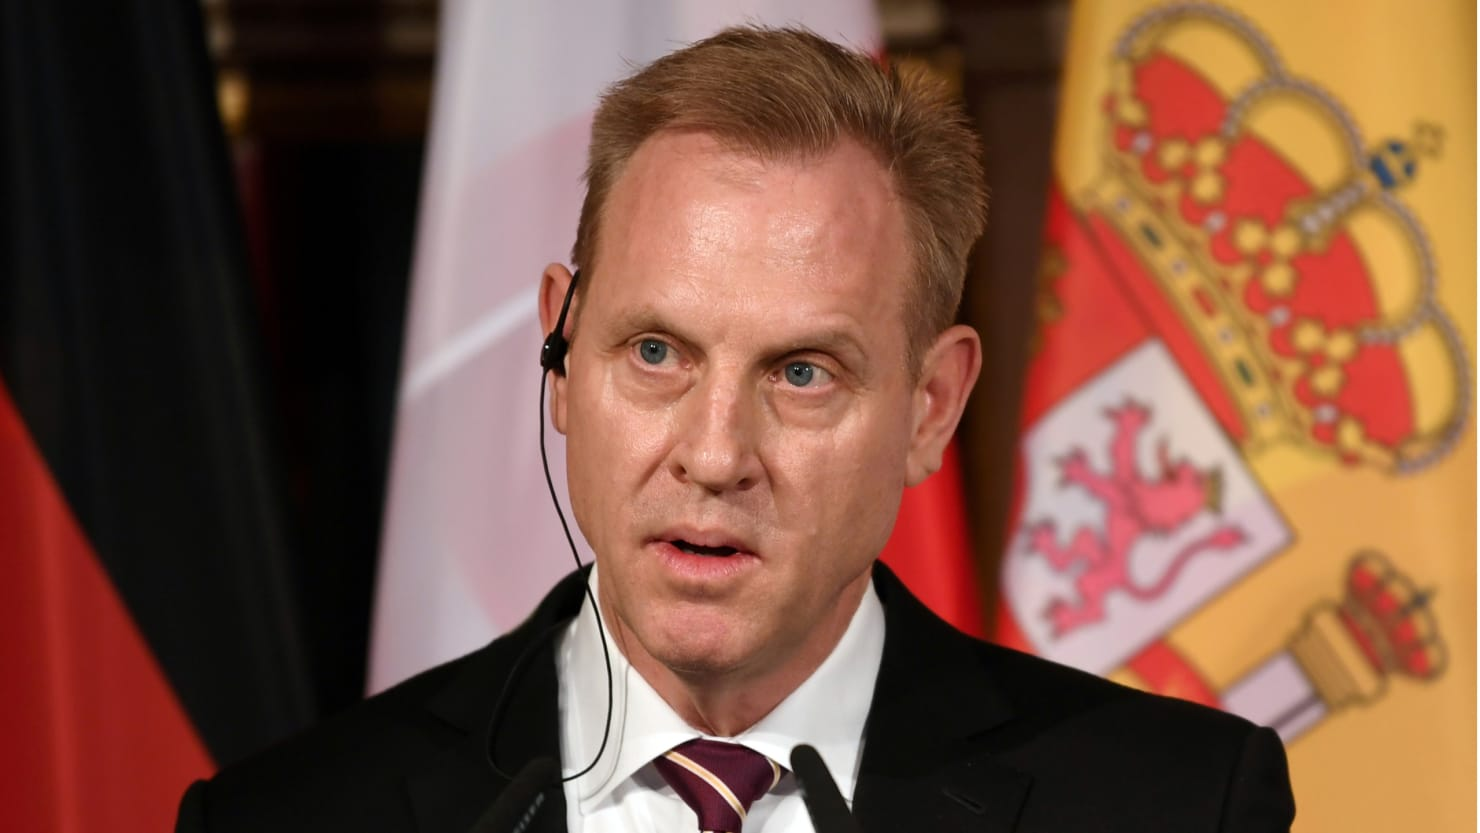 Acting Defense Secretary Patrick Shanahan 'Slammed' by Lawmakers in Munich Over Trump's Syria Withdrawal